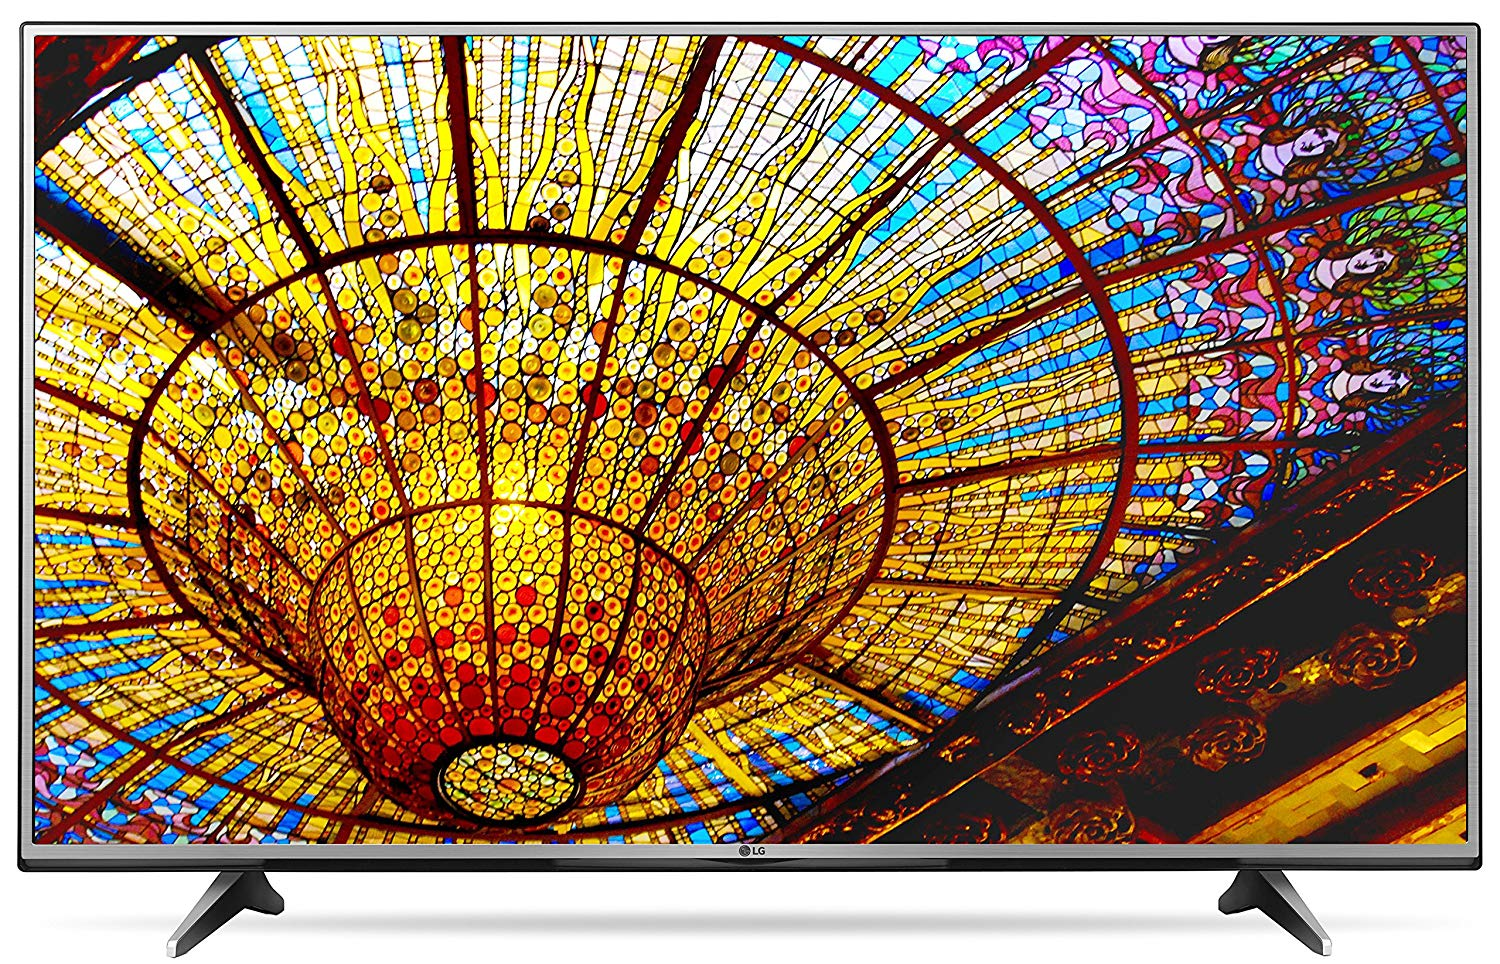 An image of LG 65UH6150 65-Inch HDR Flat Screen 4K LED 120Hz TV with LG TruMotion 120